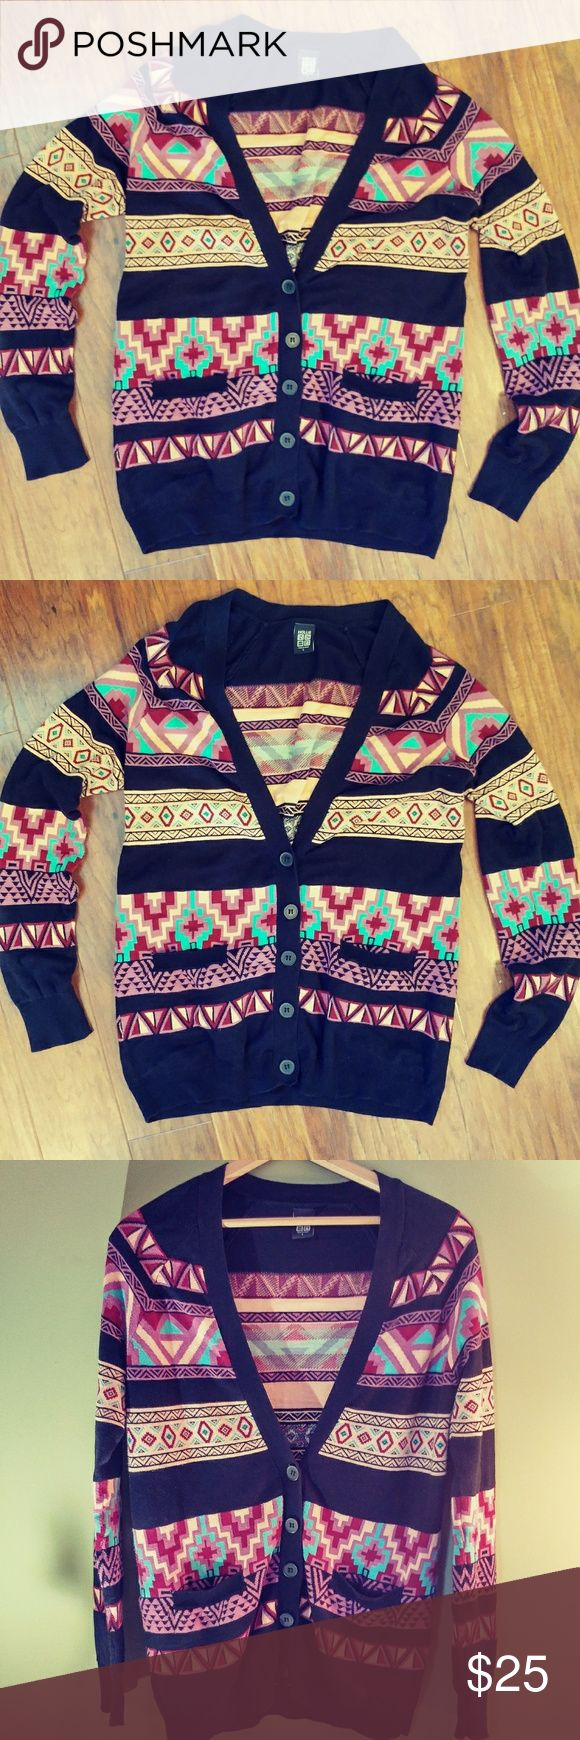 💠NOLLIE CARDIGAN💠 EUC AZTEC PRINT CARDIGAN, this is a lil big on me this measures 29 inches long. Feel free to ask me any questions. Bundle for better discount Nollie Sweaters Cardigans